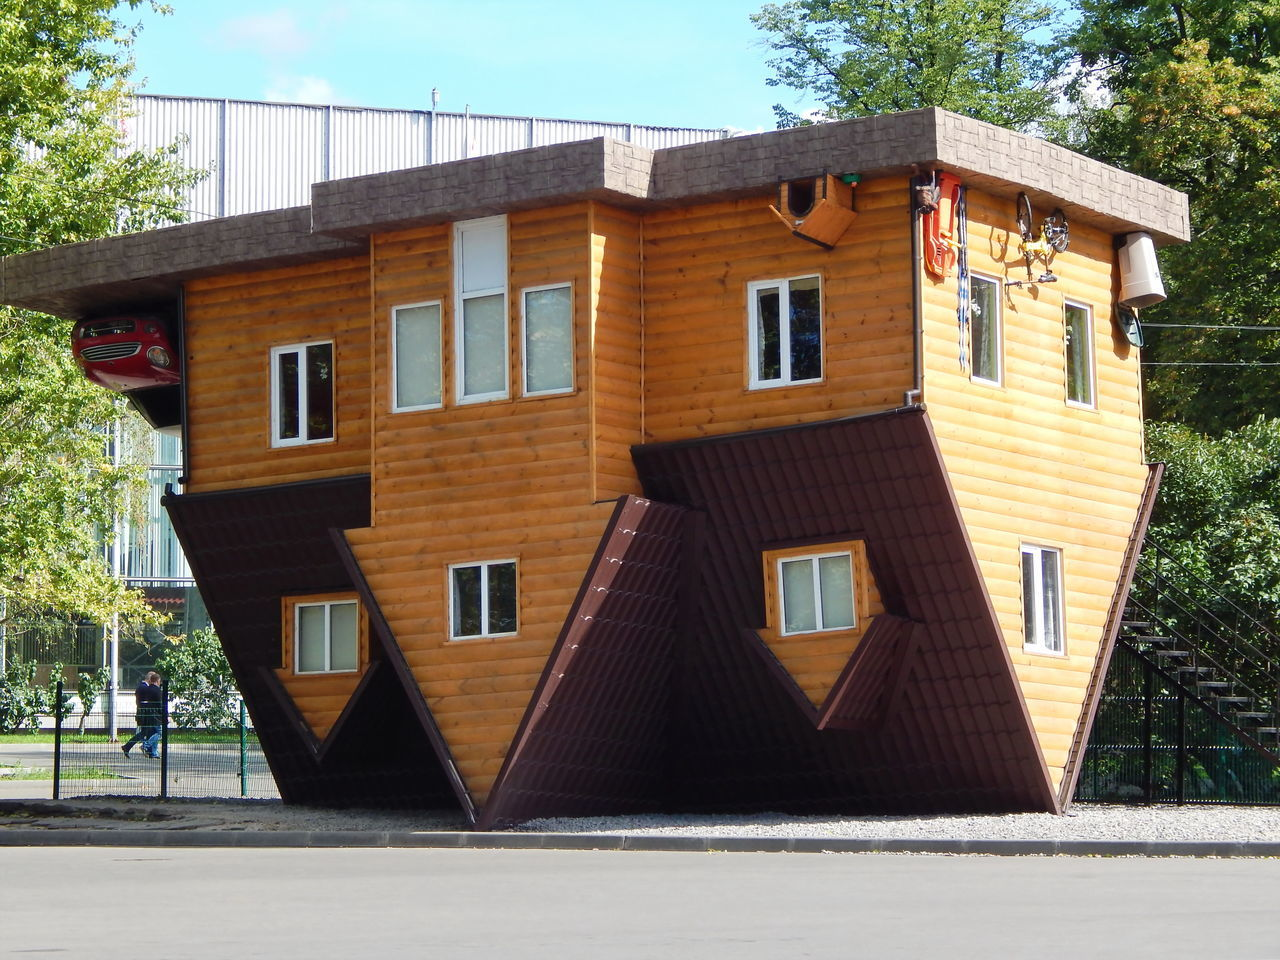 Upside down house Architecture Building Exterior Built Structure Day Entertainment House Moscow No People Outdoors Park Residential Building Russia Sky Tree Upside Down House Window